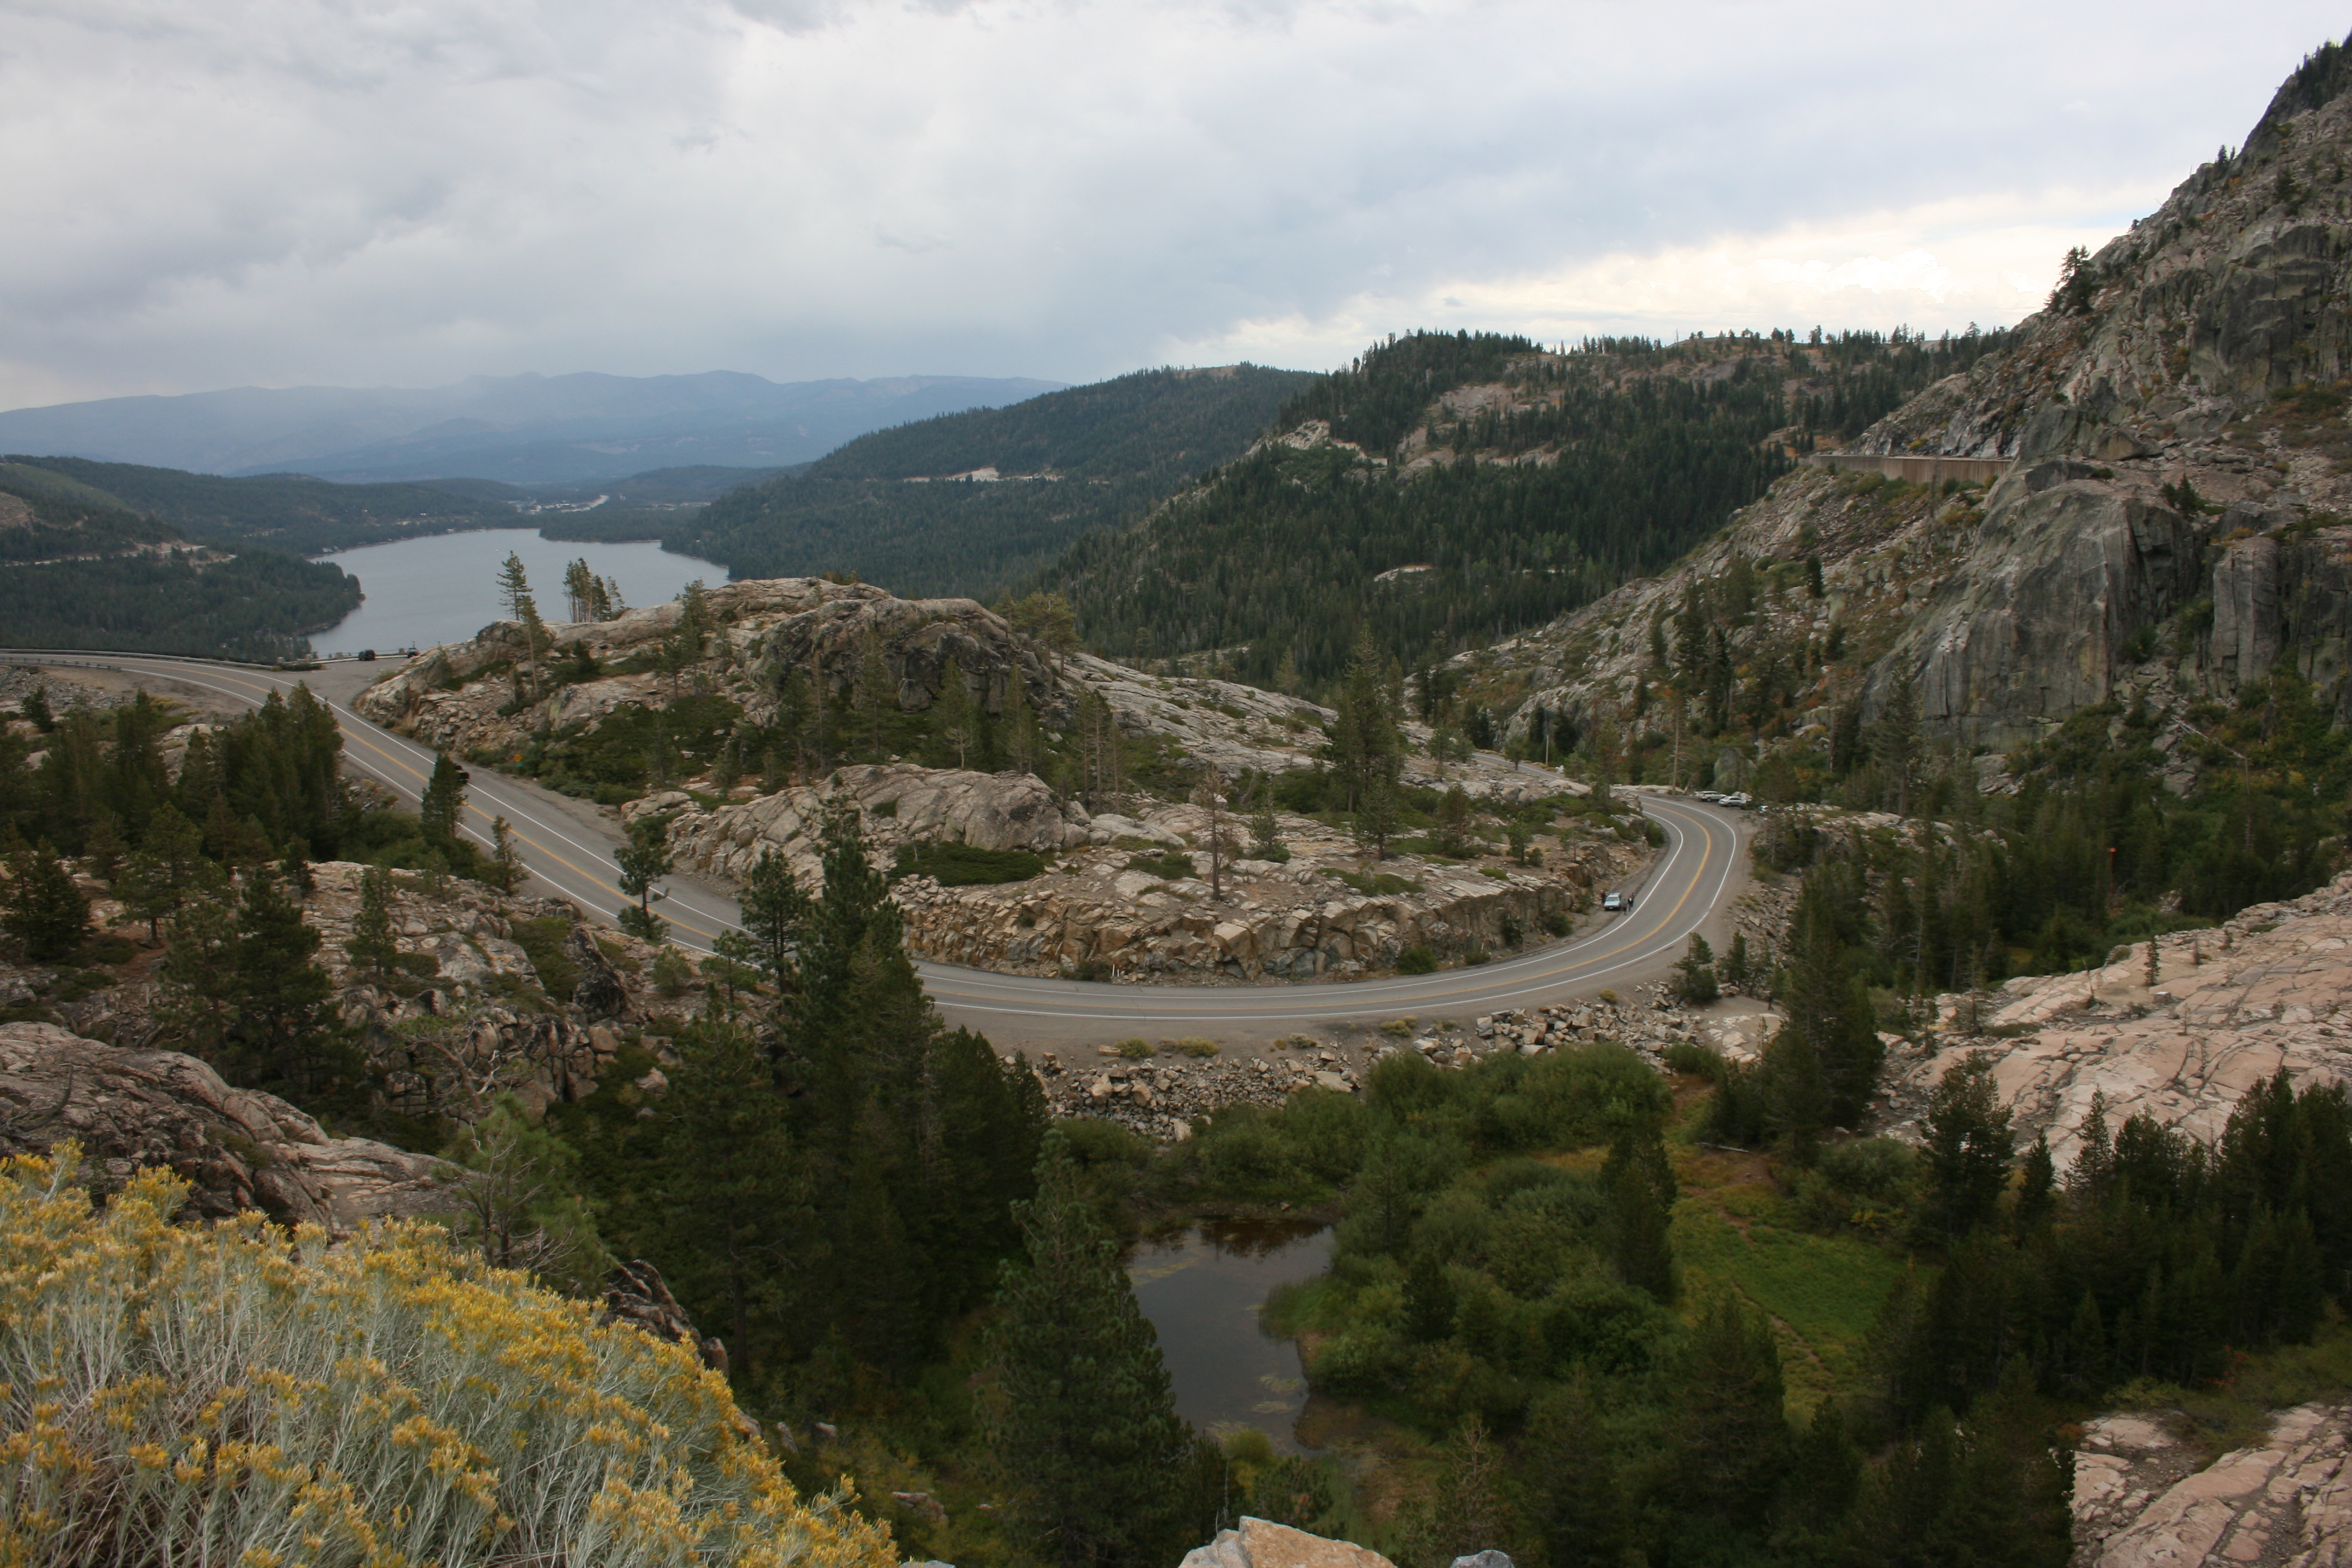 Donner Summit, the old U.S. 40